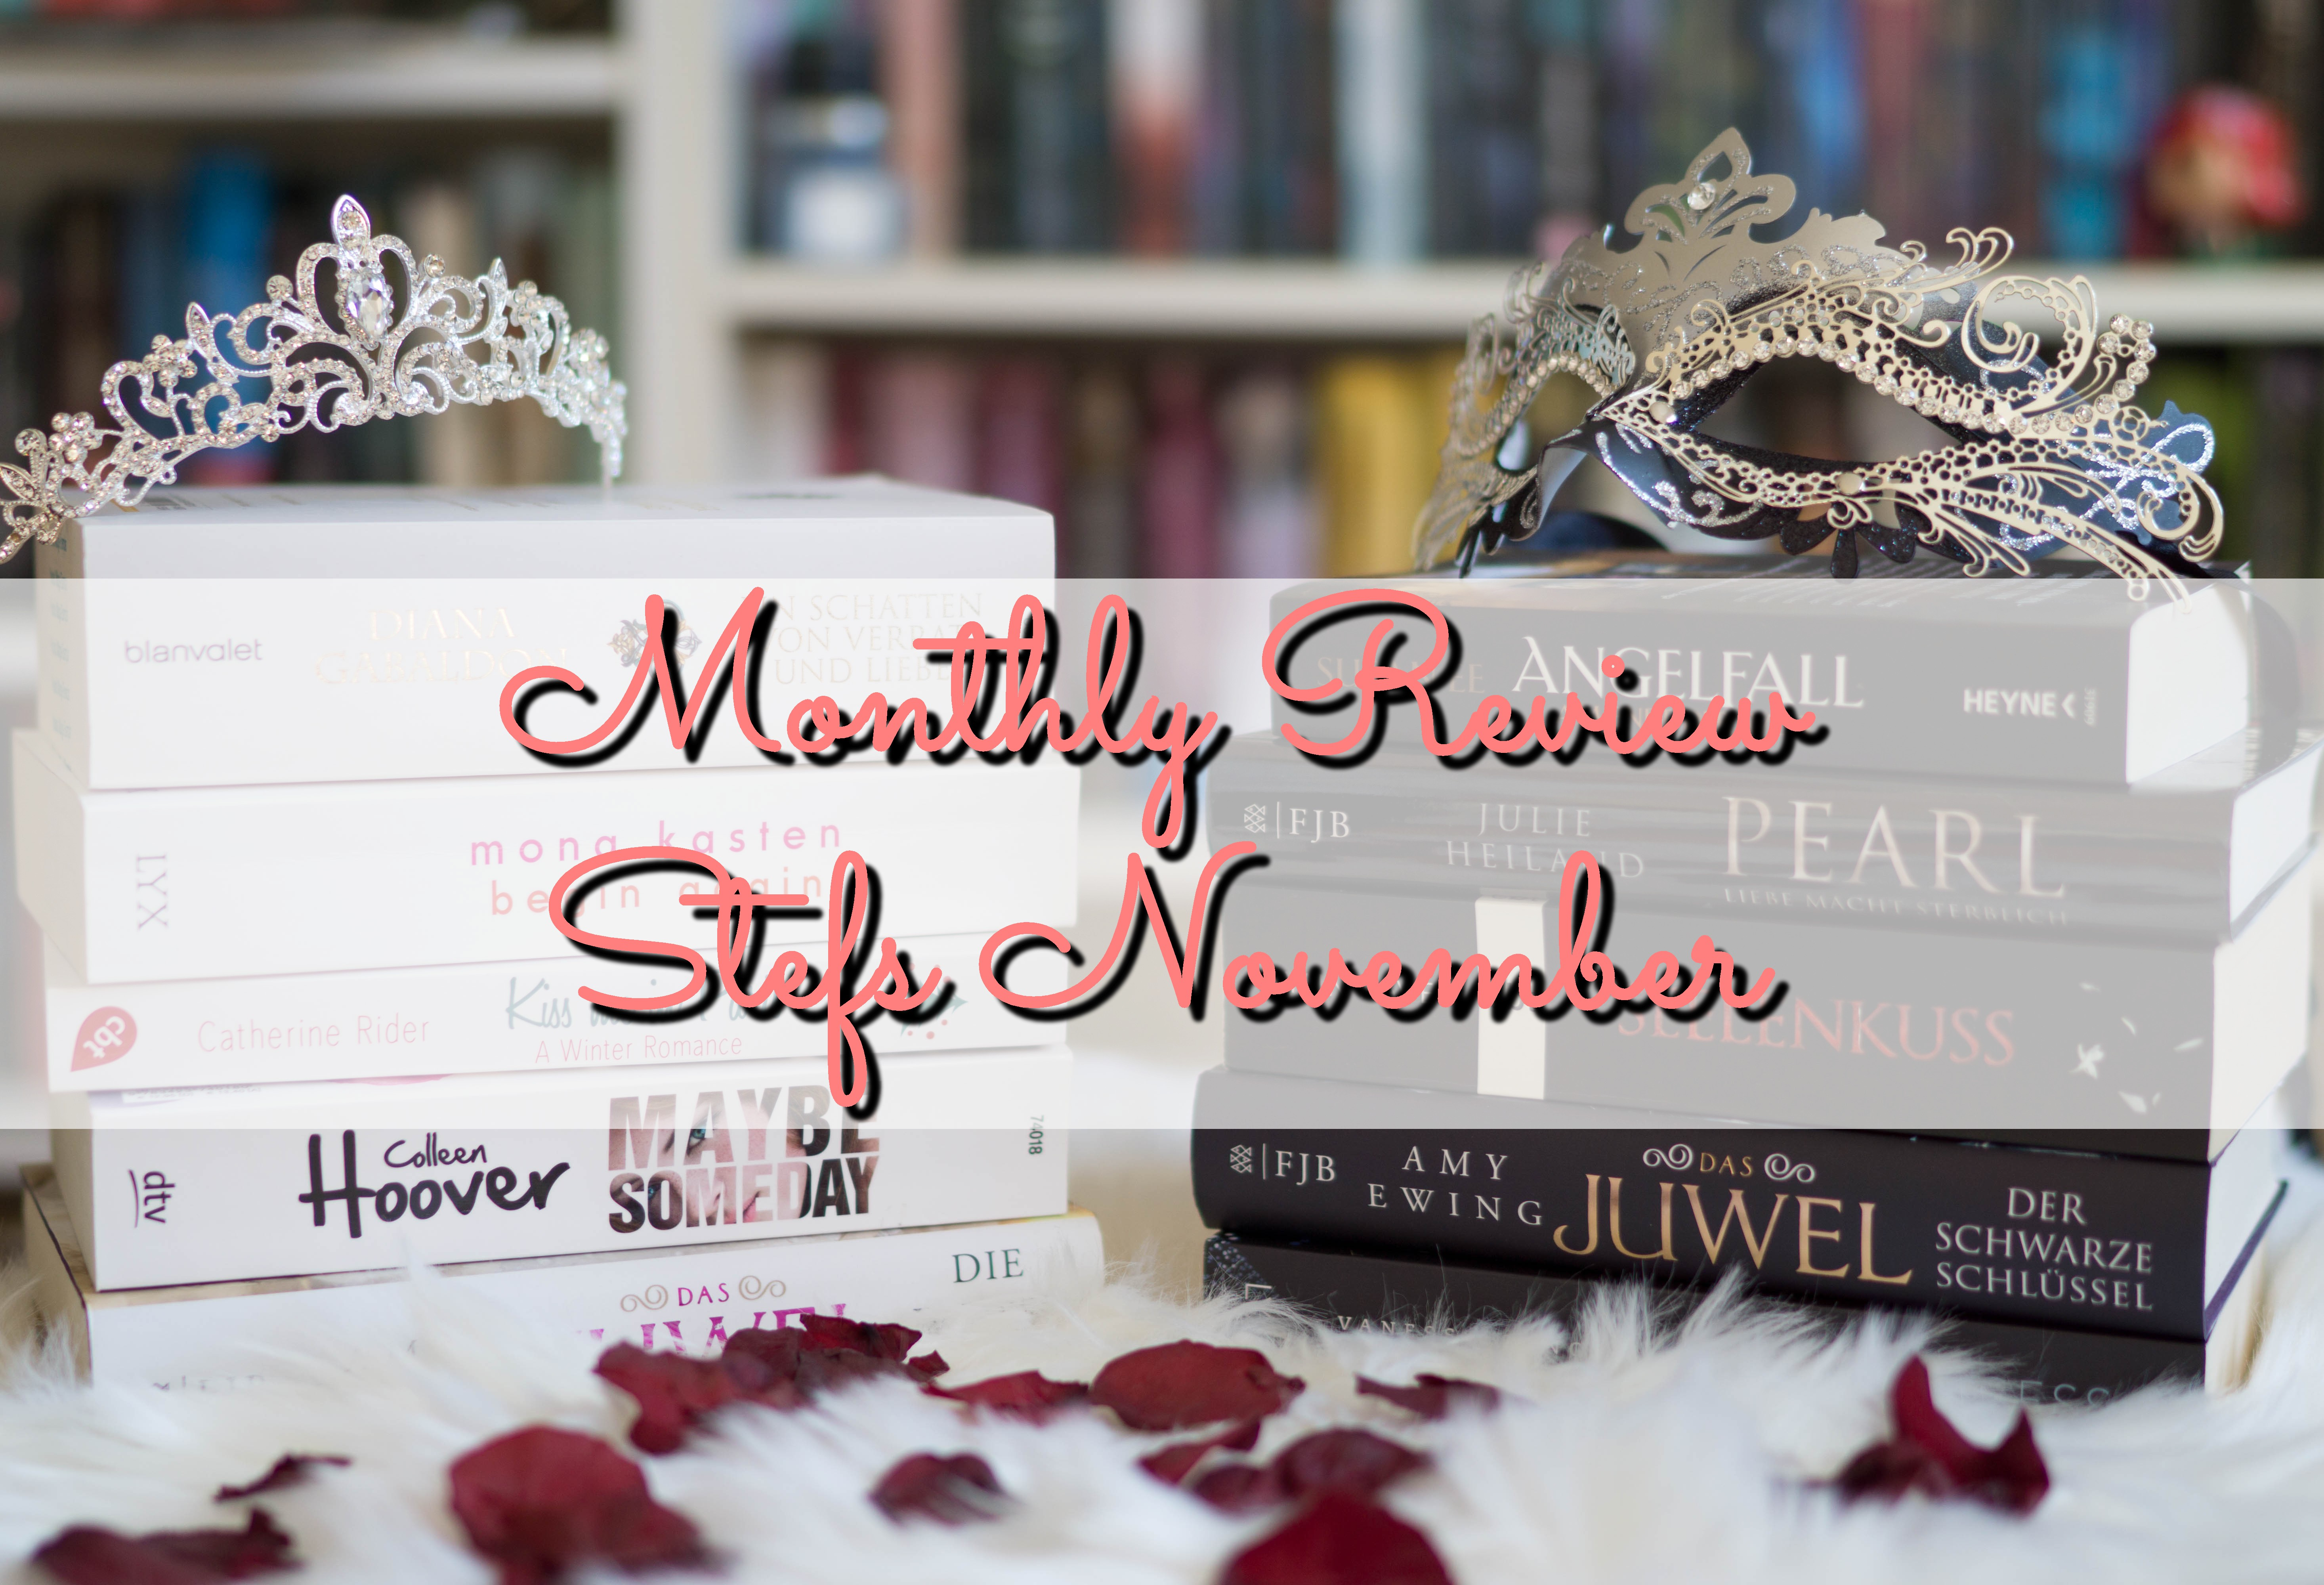 Monthly Review: Stefs November graphic